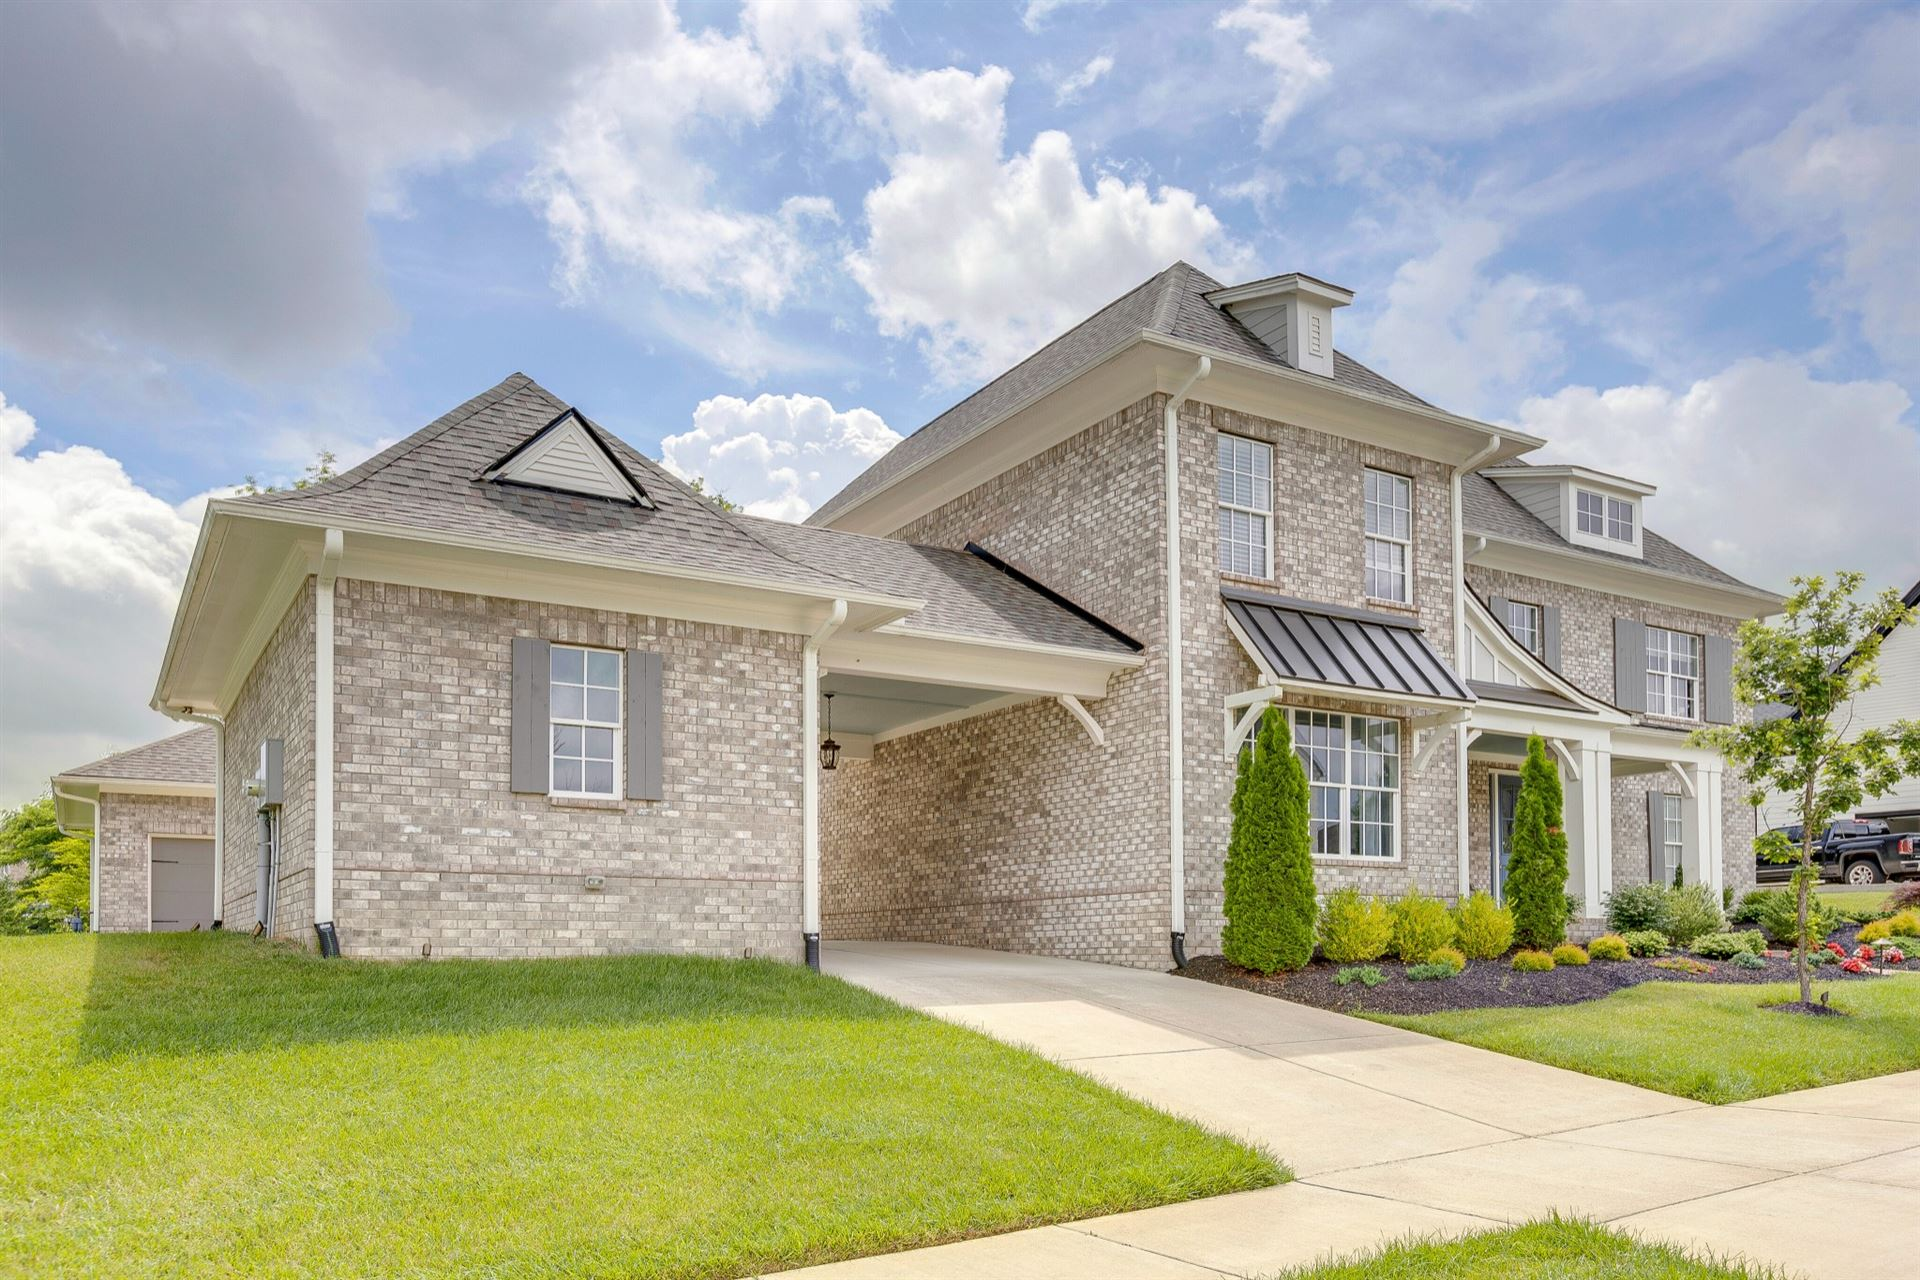 Photo of 2048 Hornsby Dr, Franklin, TN 37064 (MLS # 2261730)